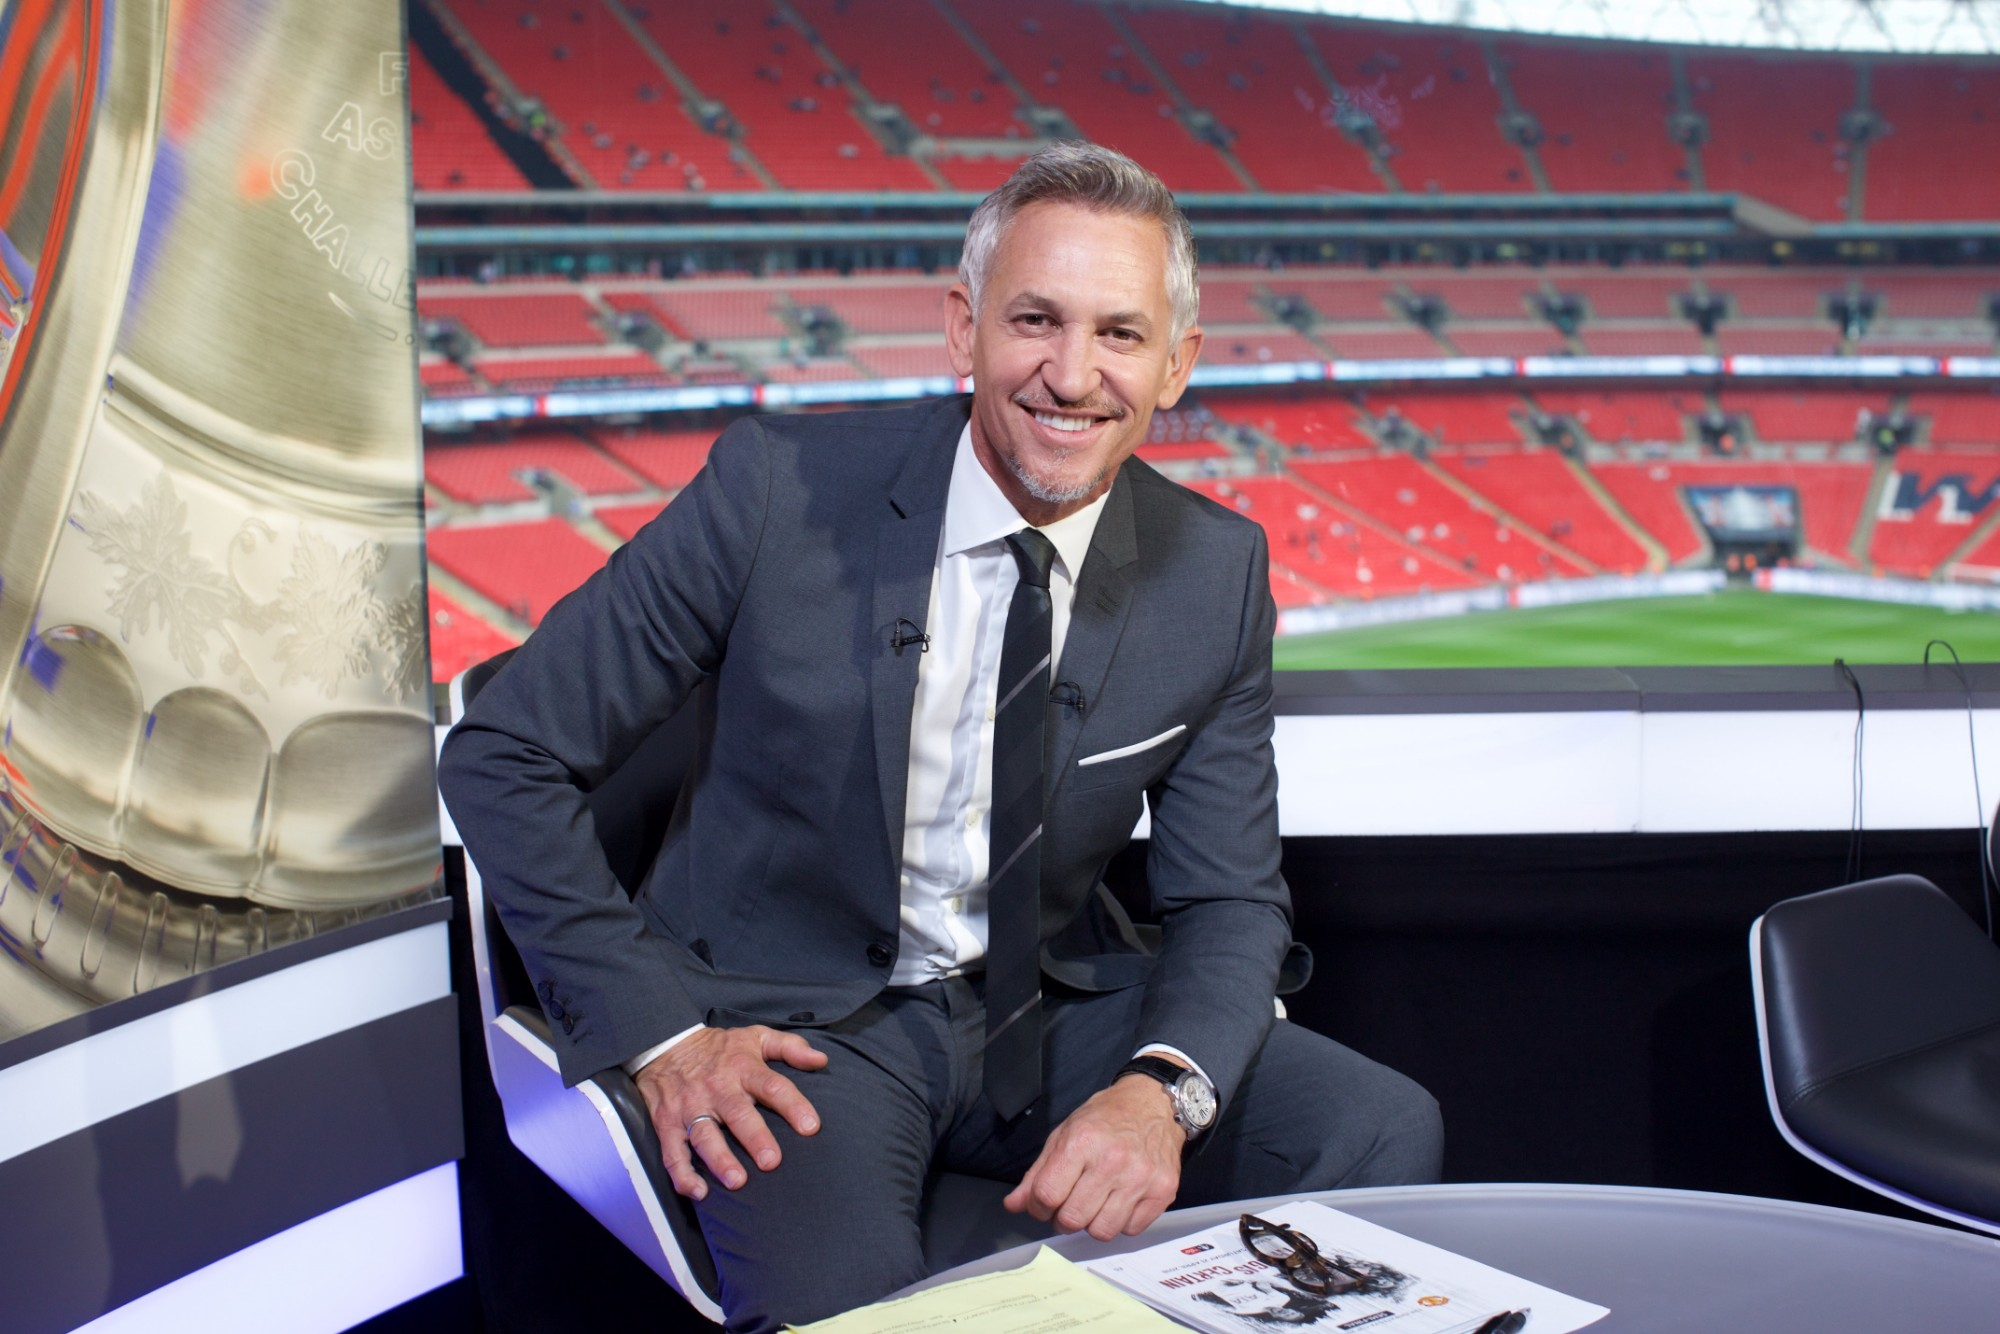 Gary Lineker Revealed as Host of TACKLE4MCR - About Manchester